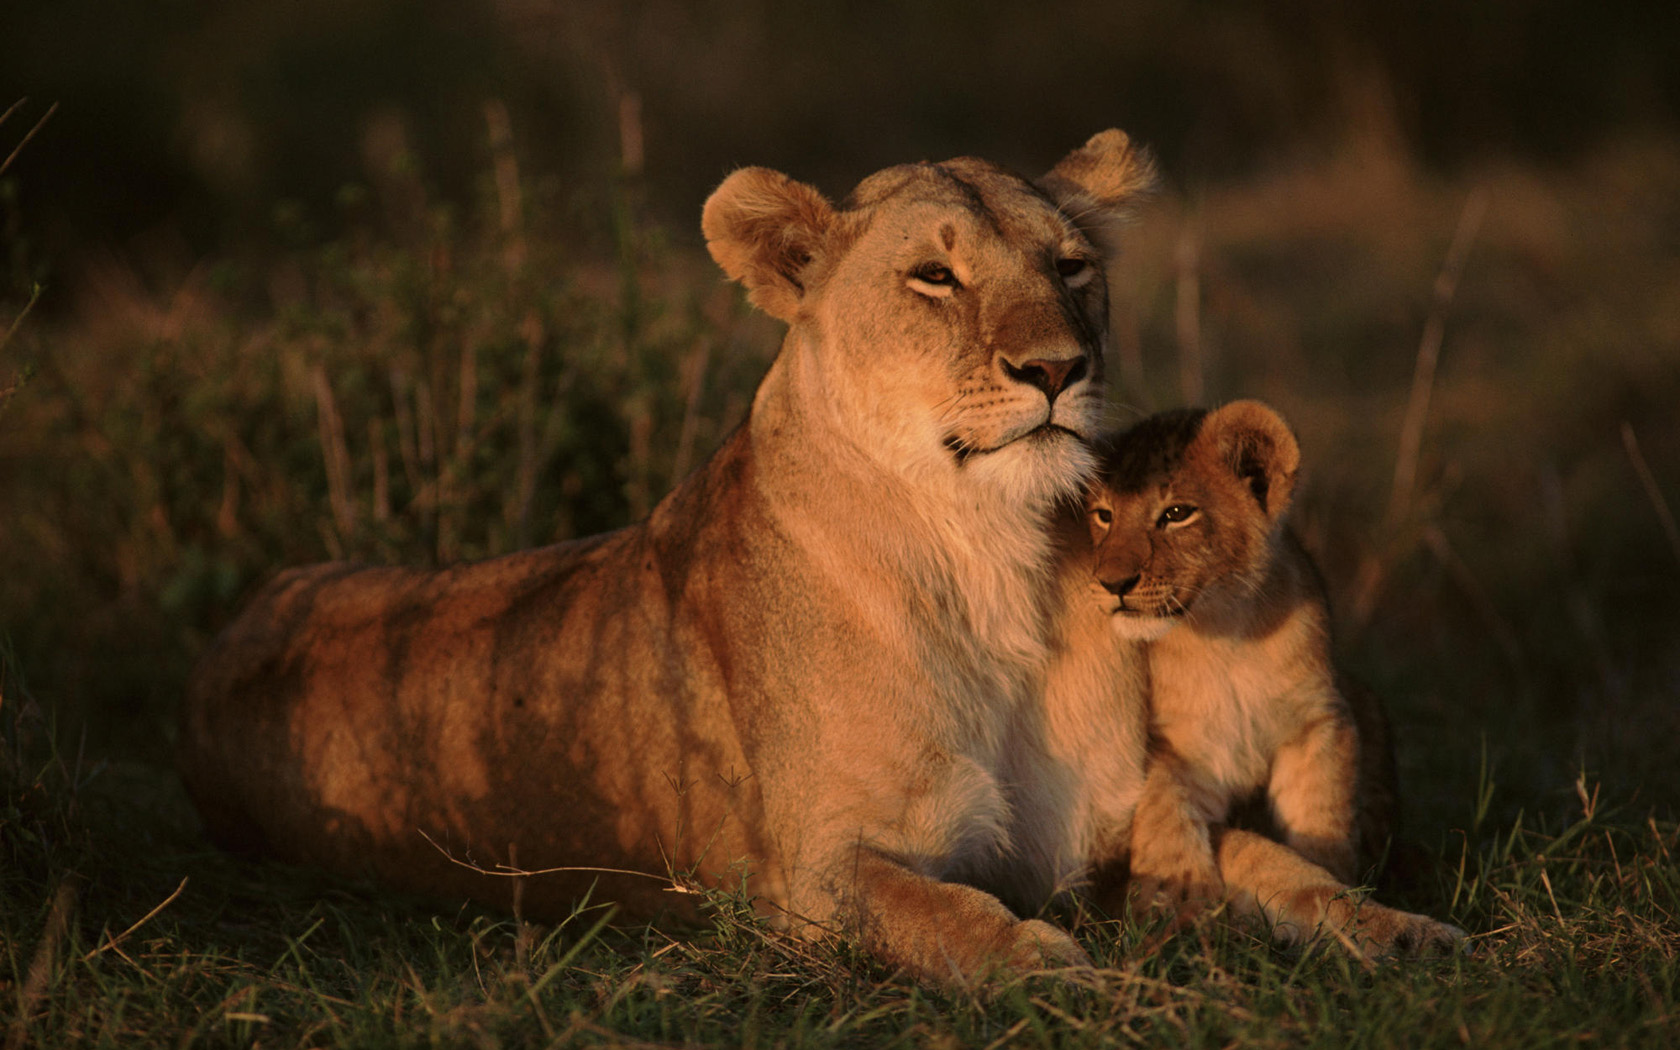 Cute Lion Cubs Hd Wallpapers Mothers Day Lion And Cub